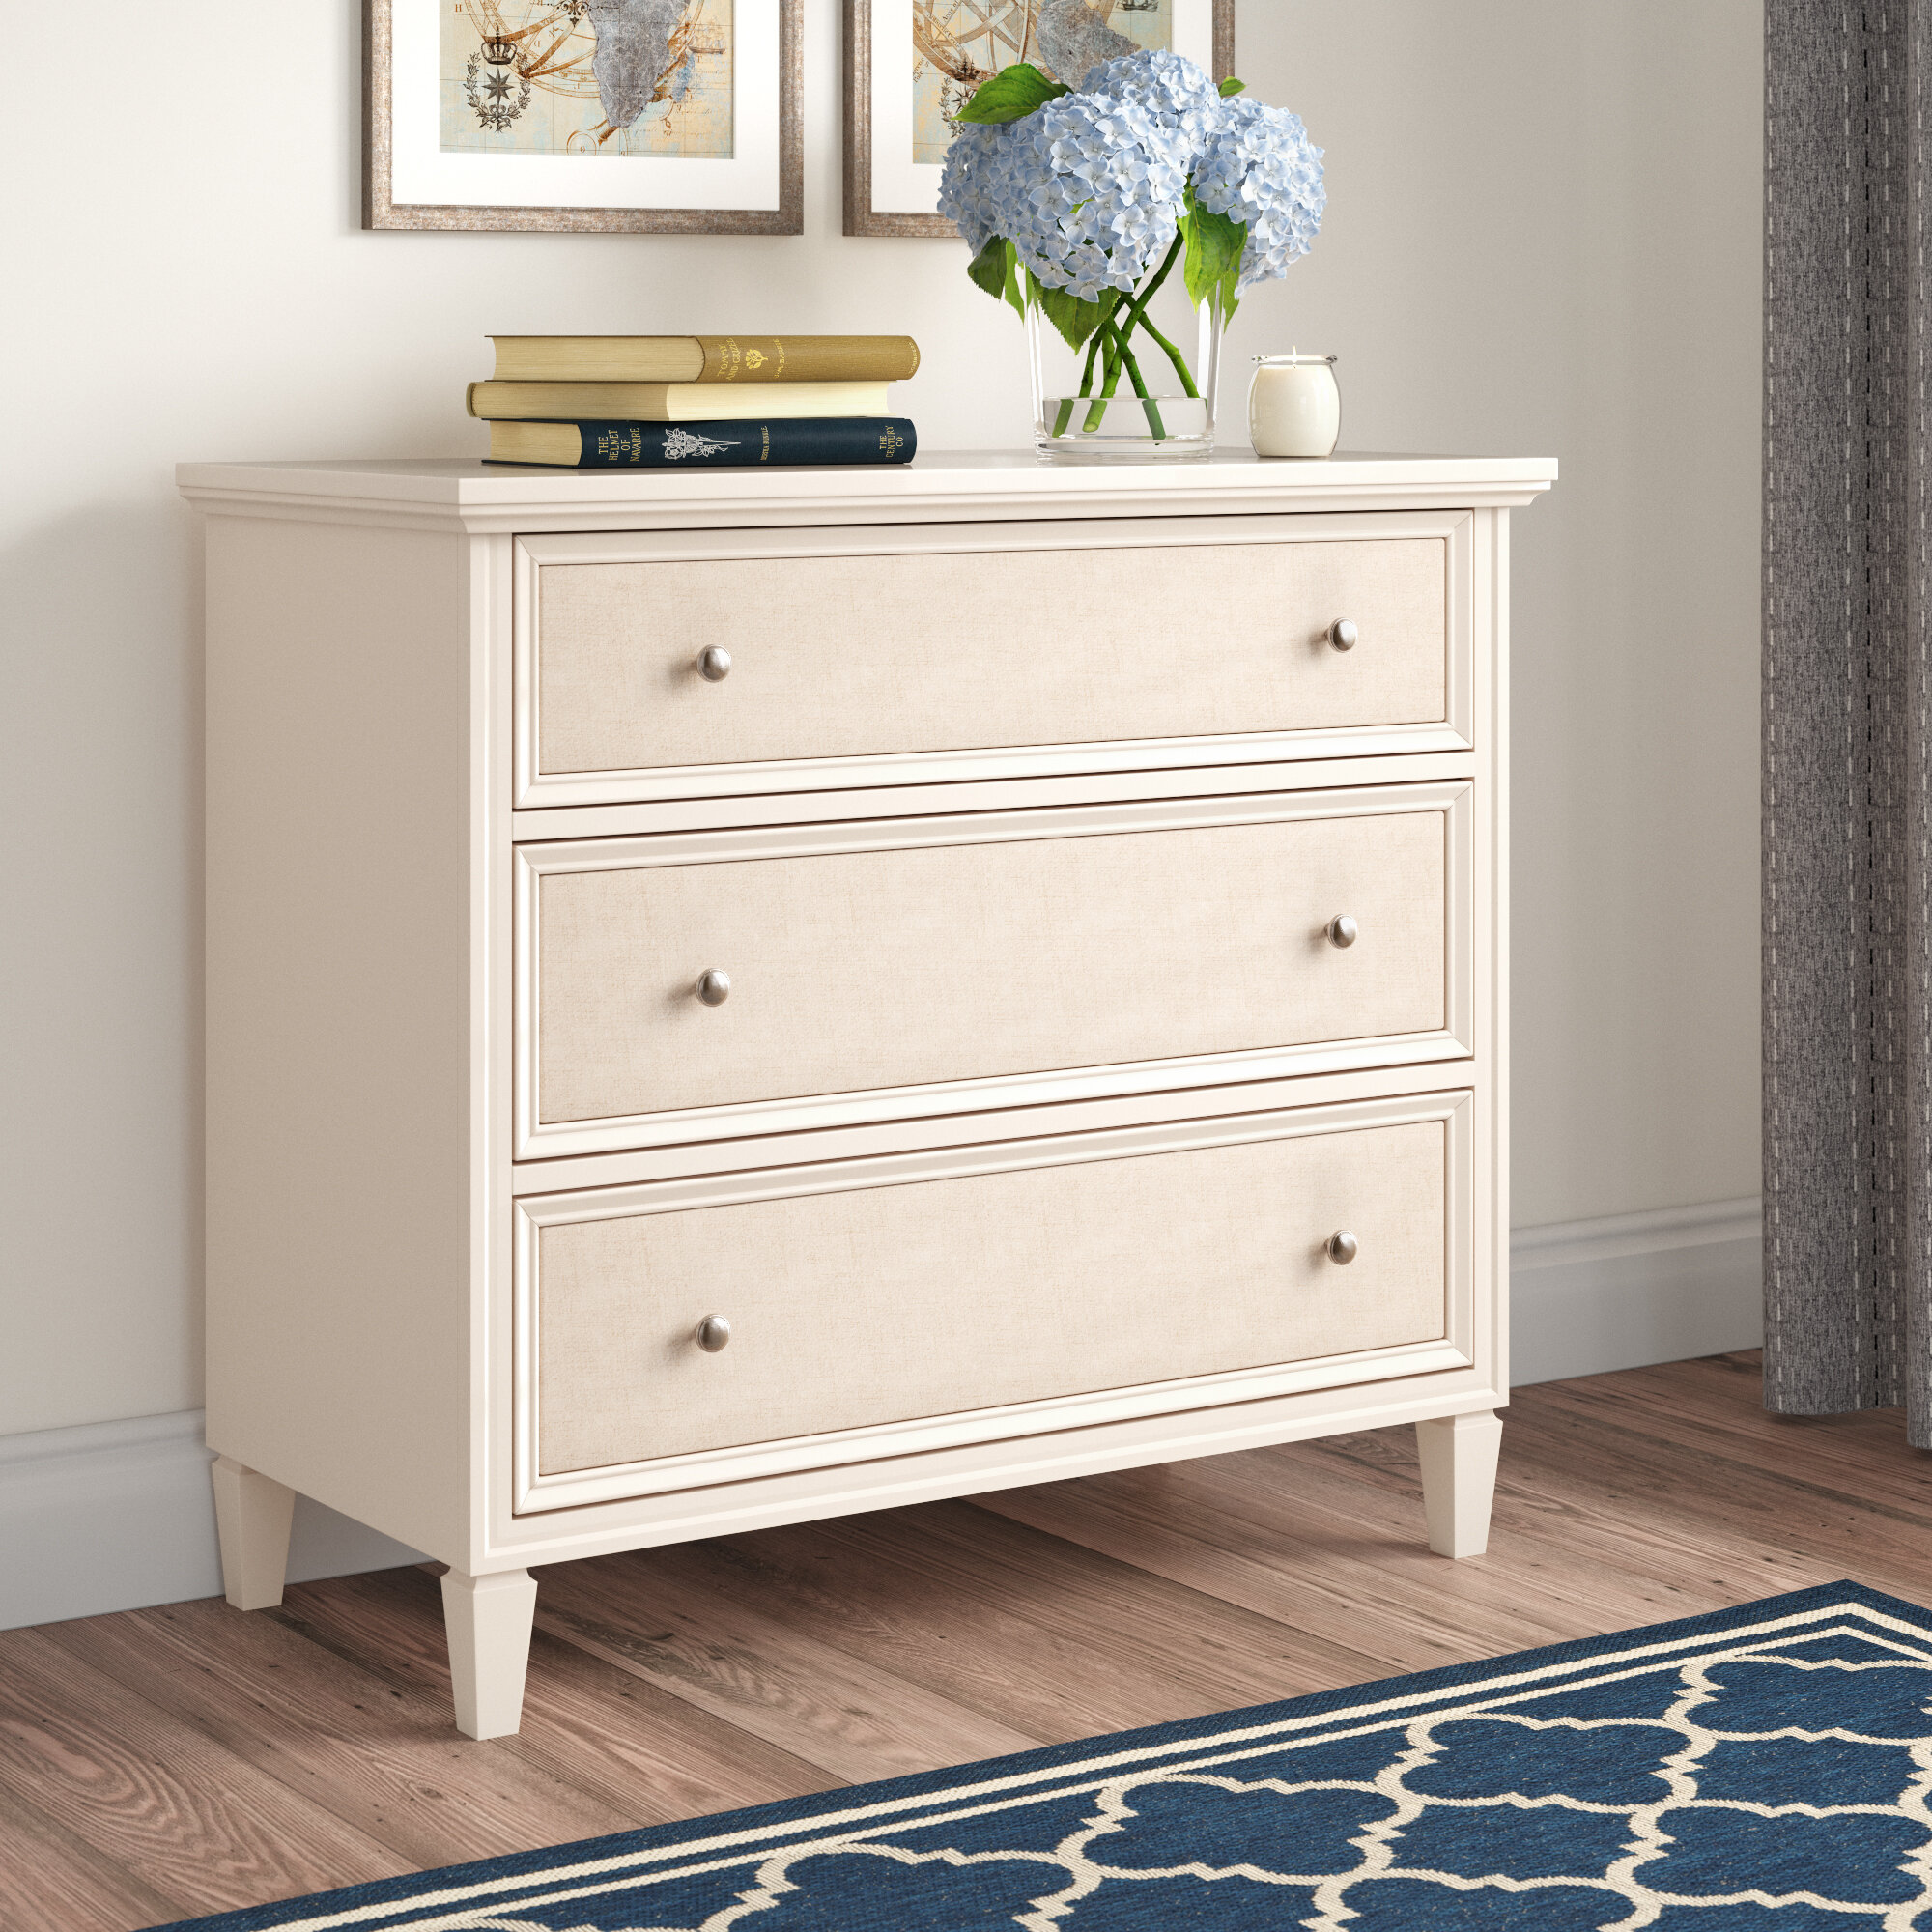 Horizontal Up To 39 Inch Tvs Dressers Chests You Ll Love In 2021 Wayfair